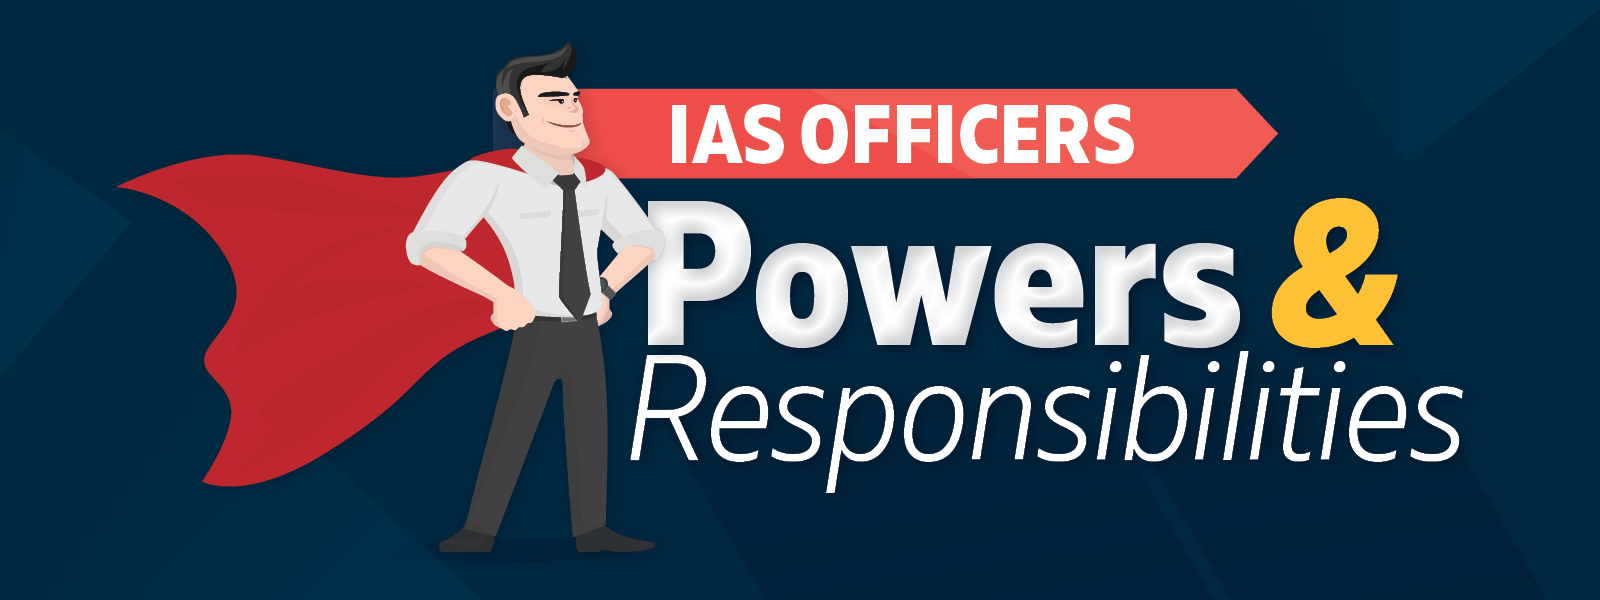 IAS Officers Powers and Responsibilities